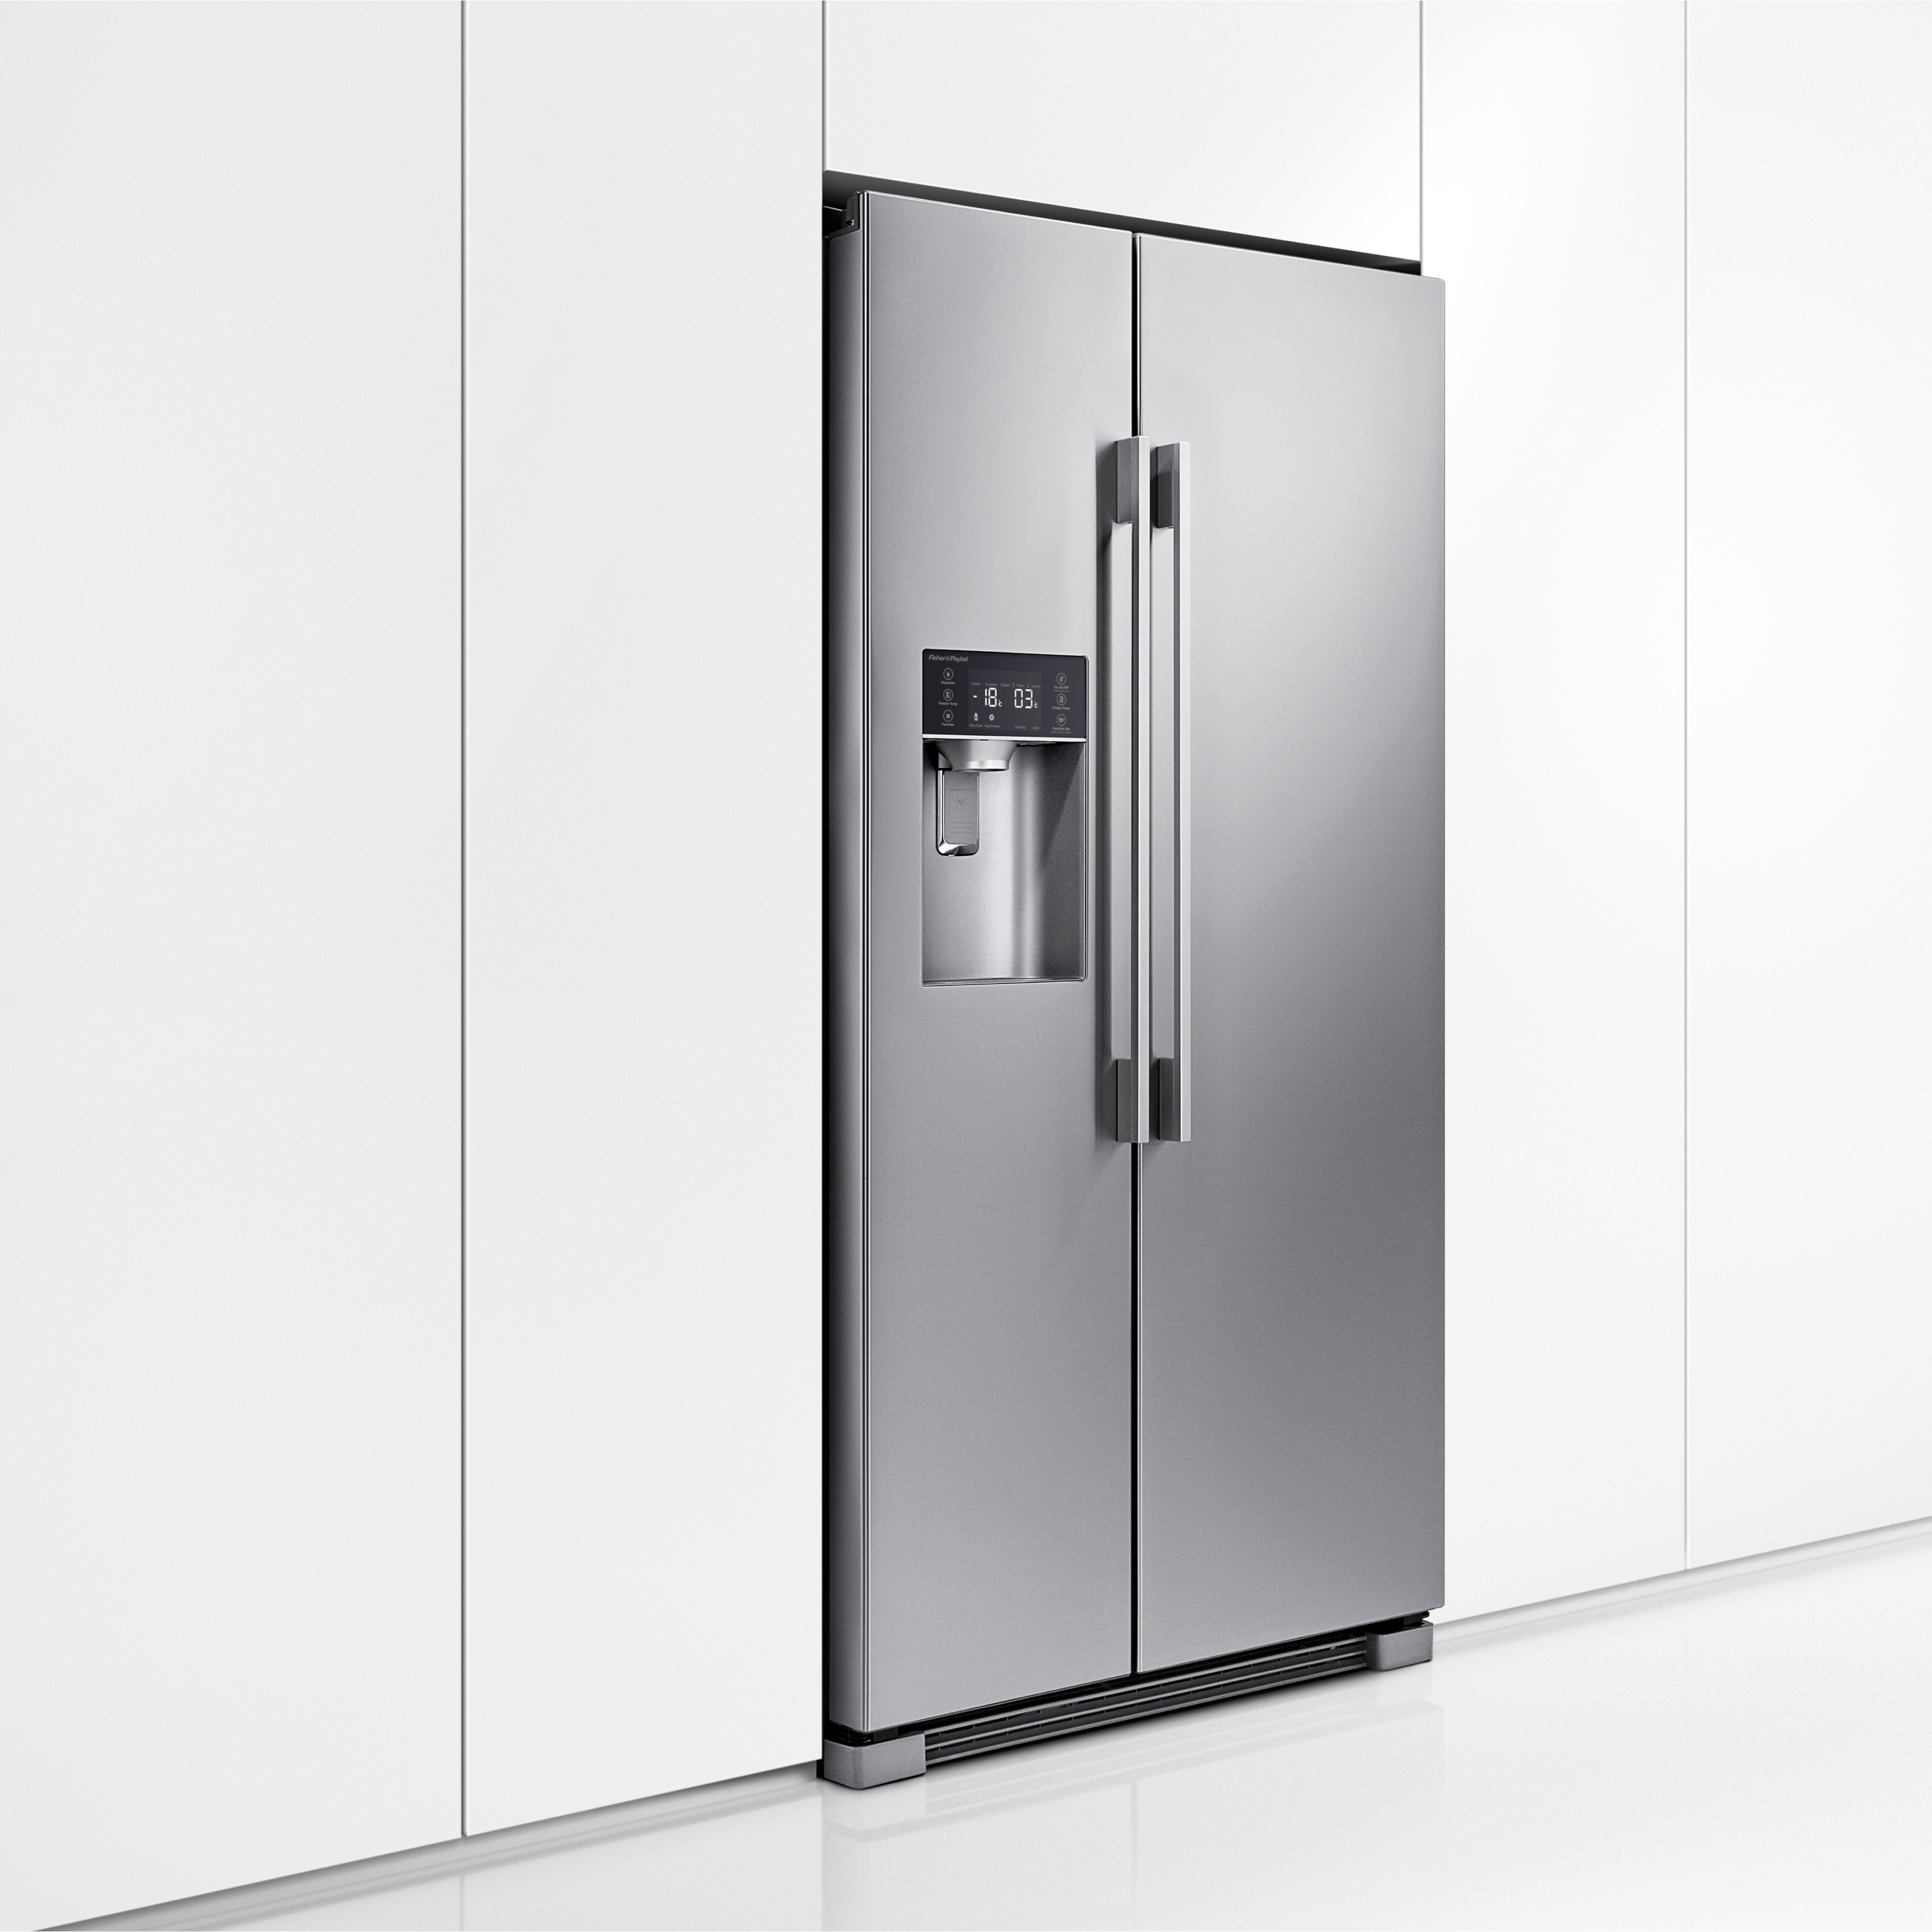 Side By Side Fridge Fisher And Paykel Rx611dux1 Side By Side Fridge Freezer With